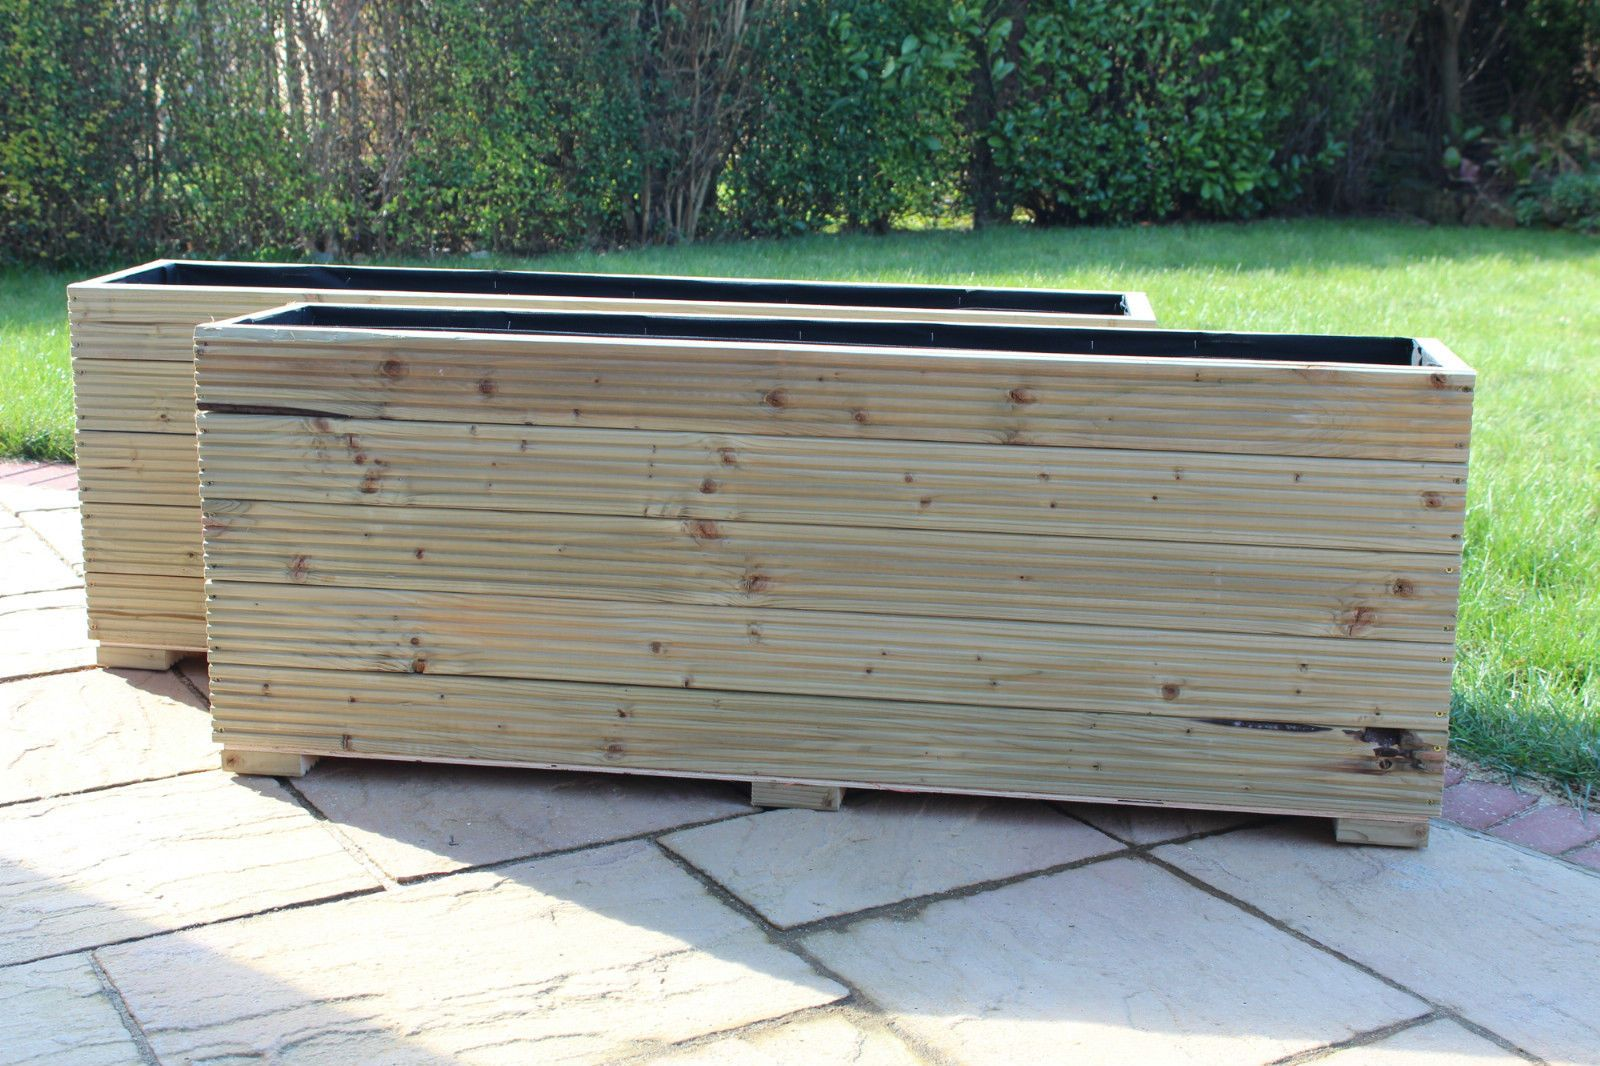 Details About 140x32x53 Cm Large Treated Wooden Garden